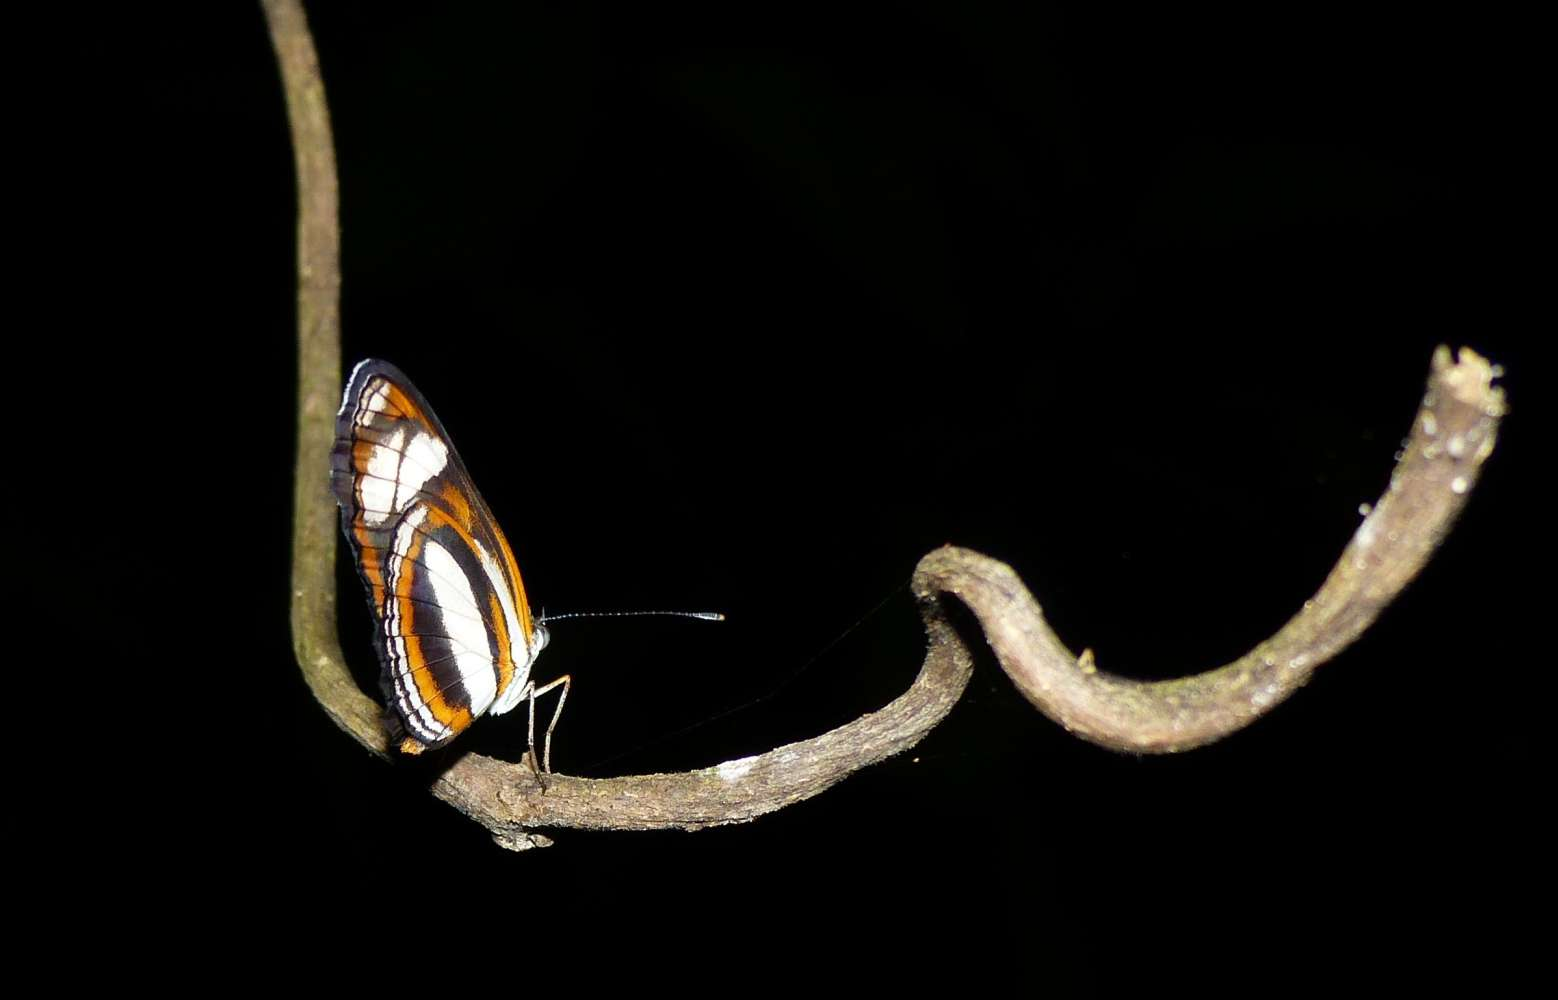 A butterfly sleeping on a branch